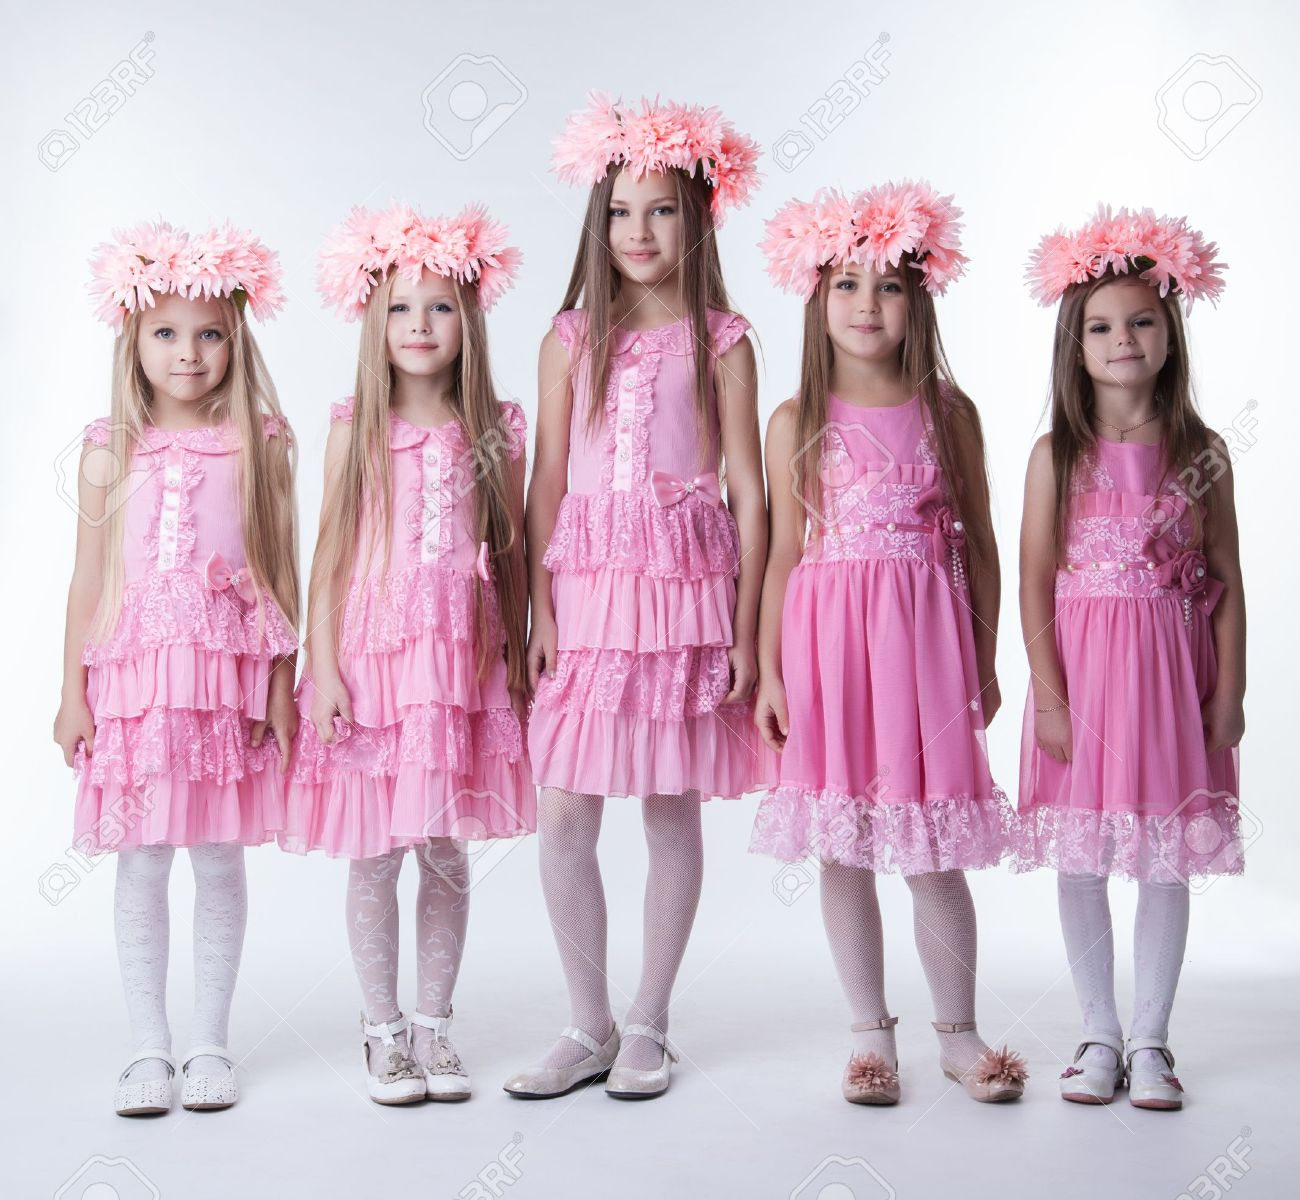 Full length portrait of five little girls in pink dresses and wreaths - 16383251